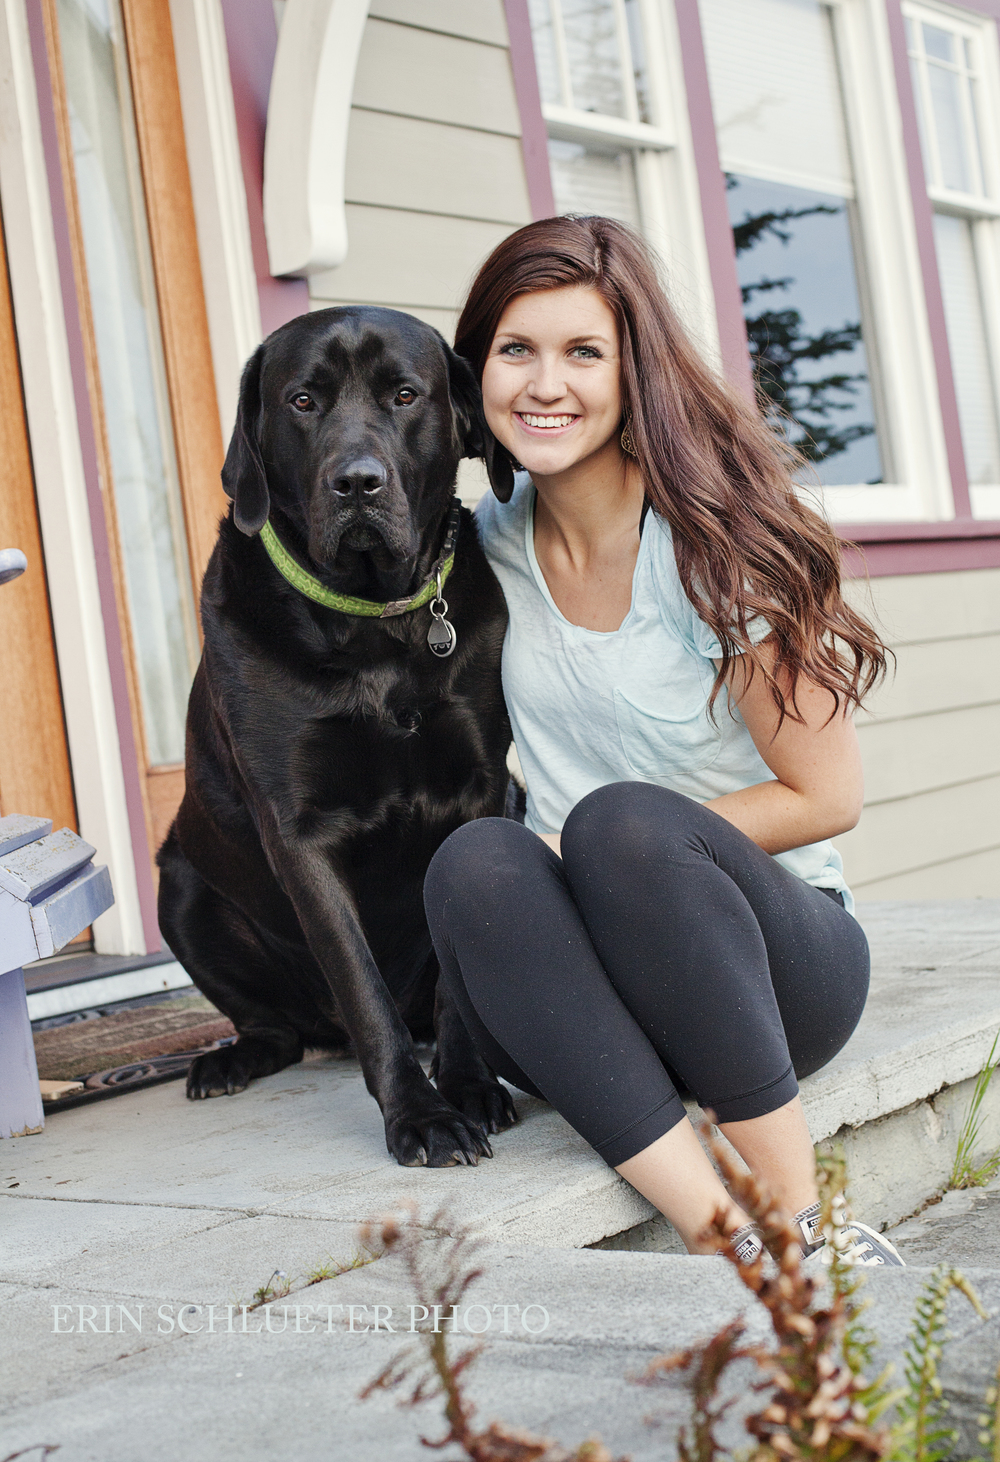 We ended the photoshoot with a photo of Jena and her dog.